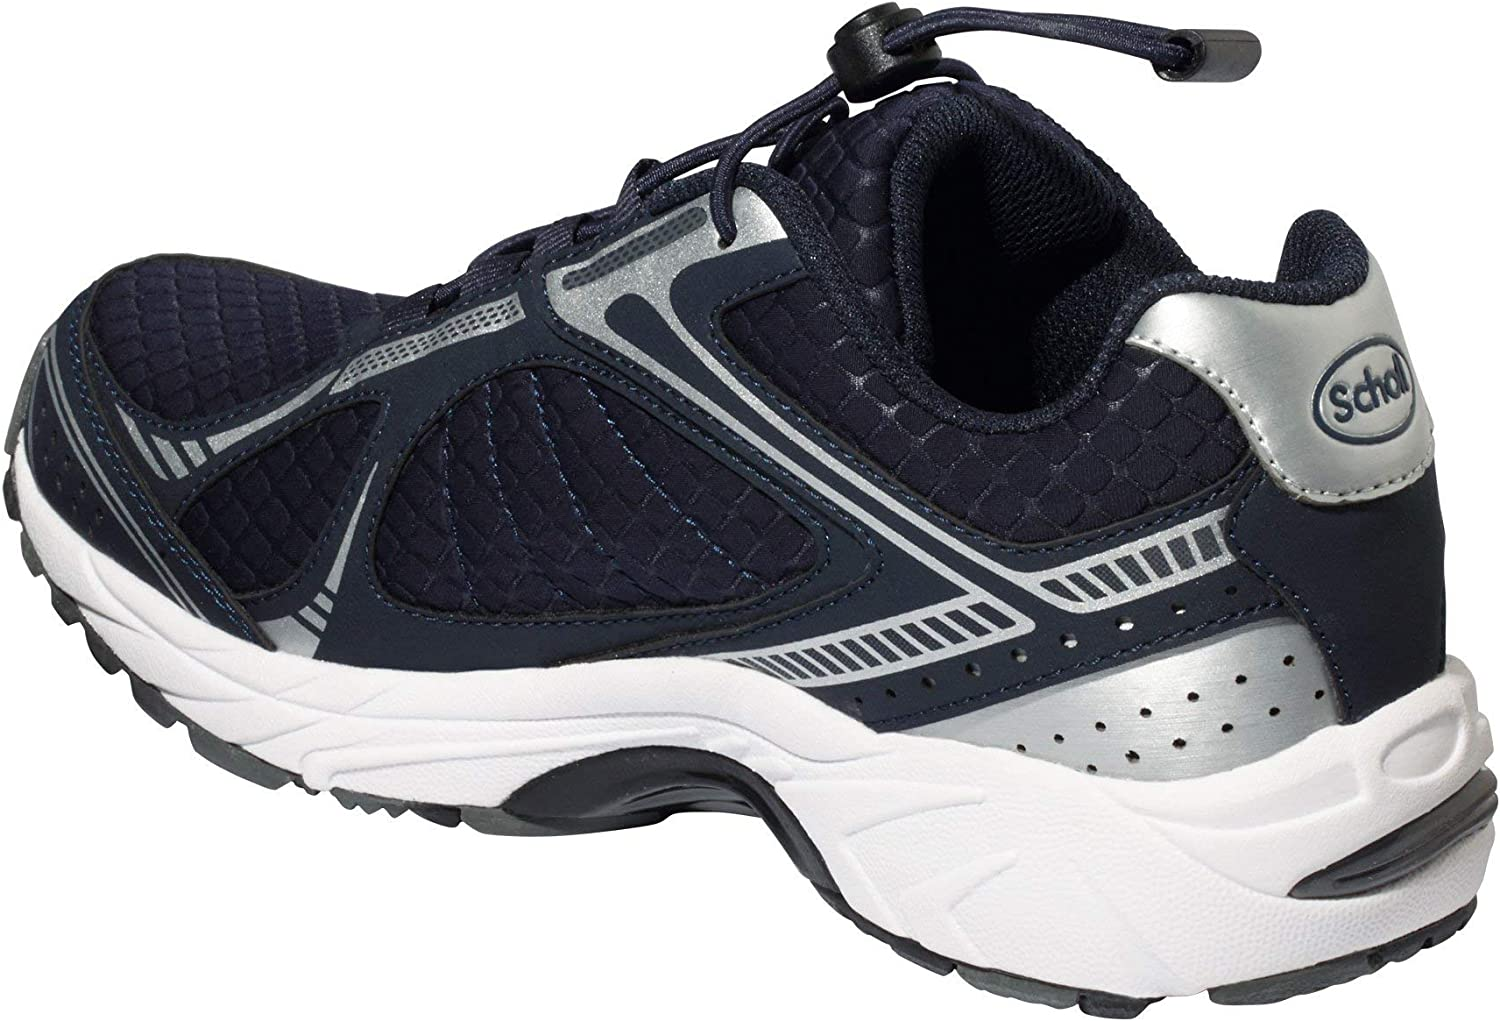 Scholl Deportivas Sprinter Easy: Amazon.es: Zapatos y complementos